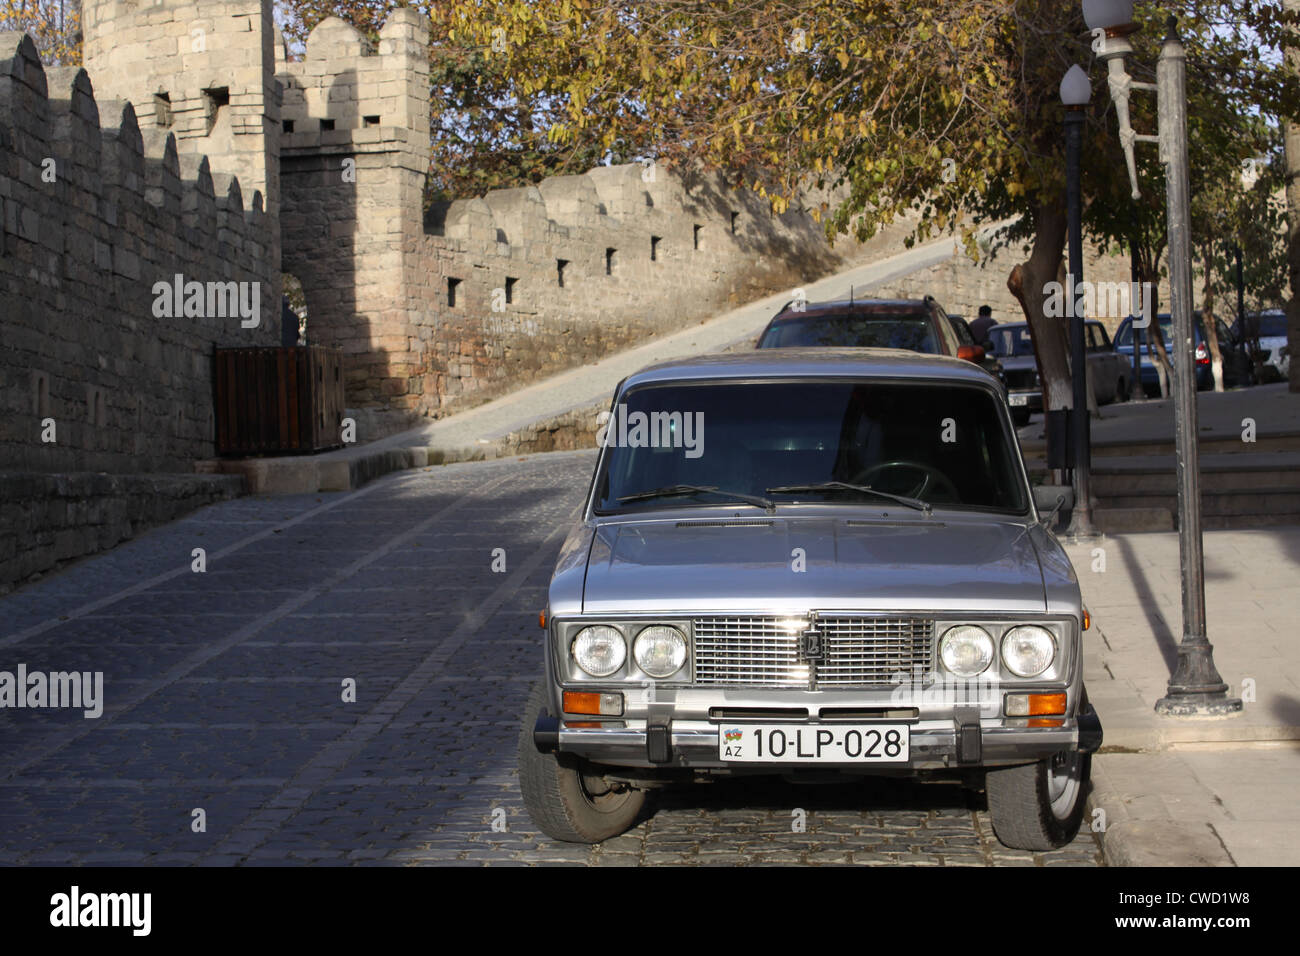 Baku, Azerbaijan. A street in the old town. A fragment of the fortress walls and retrocar - Stock Image